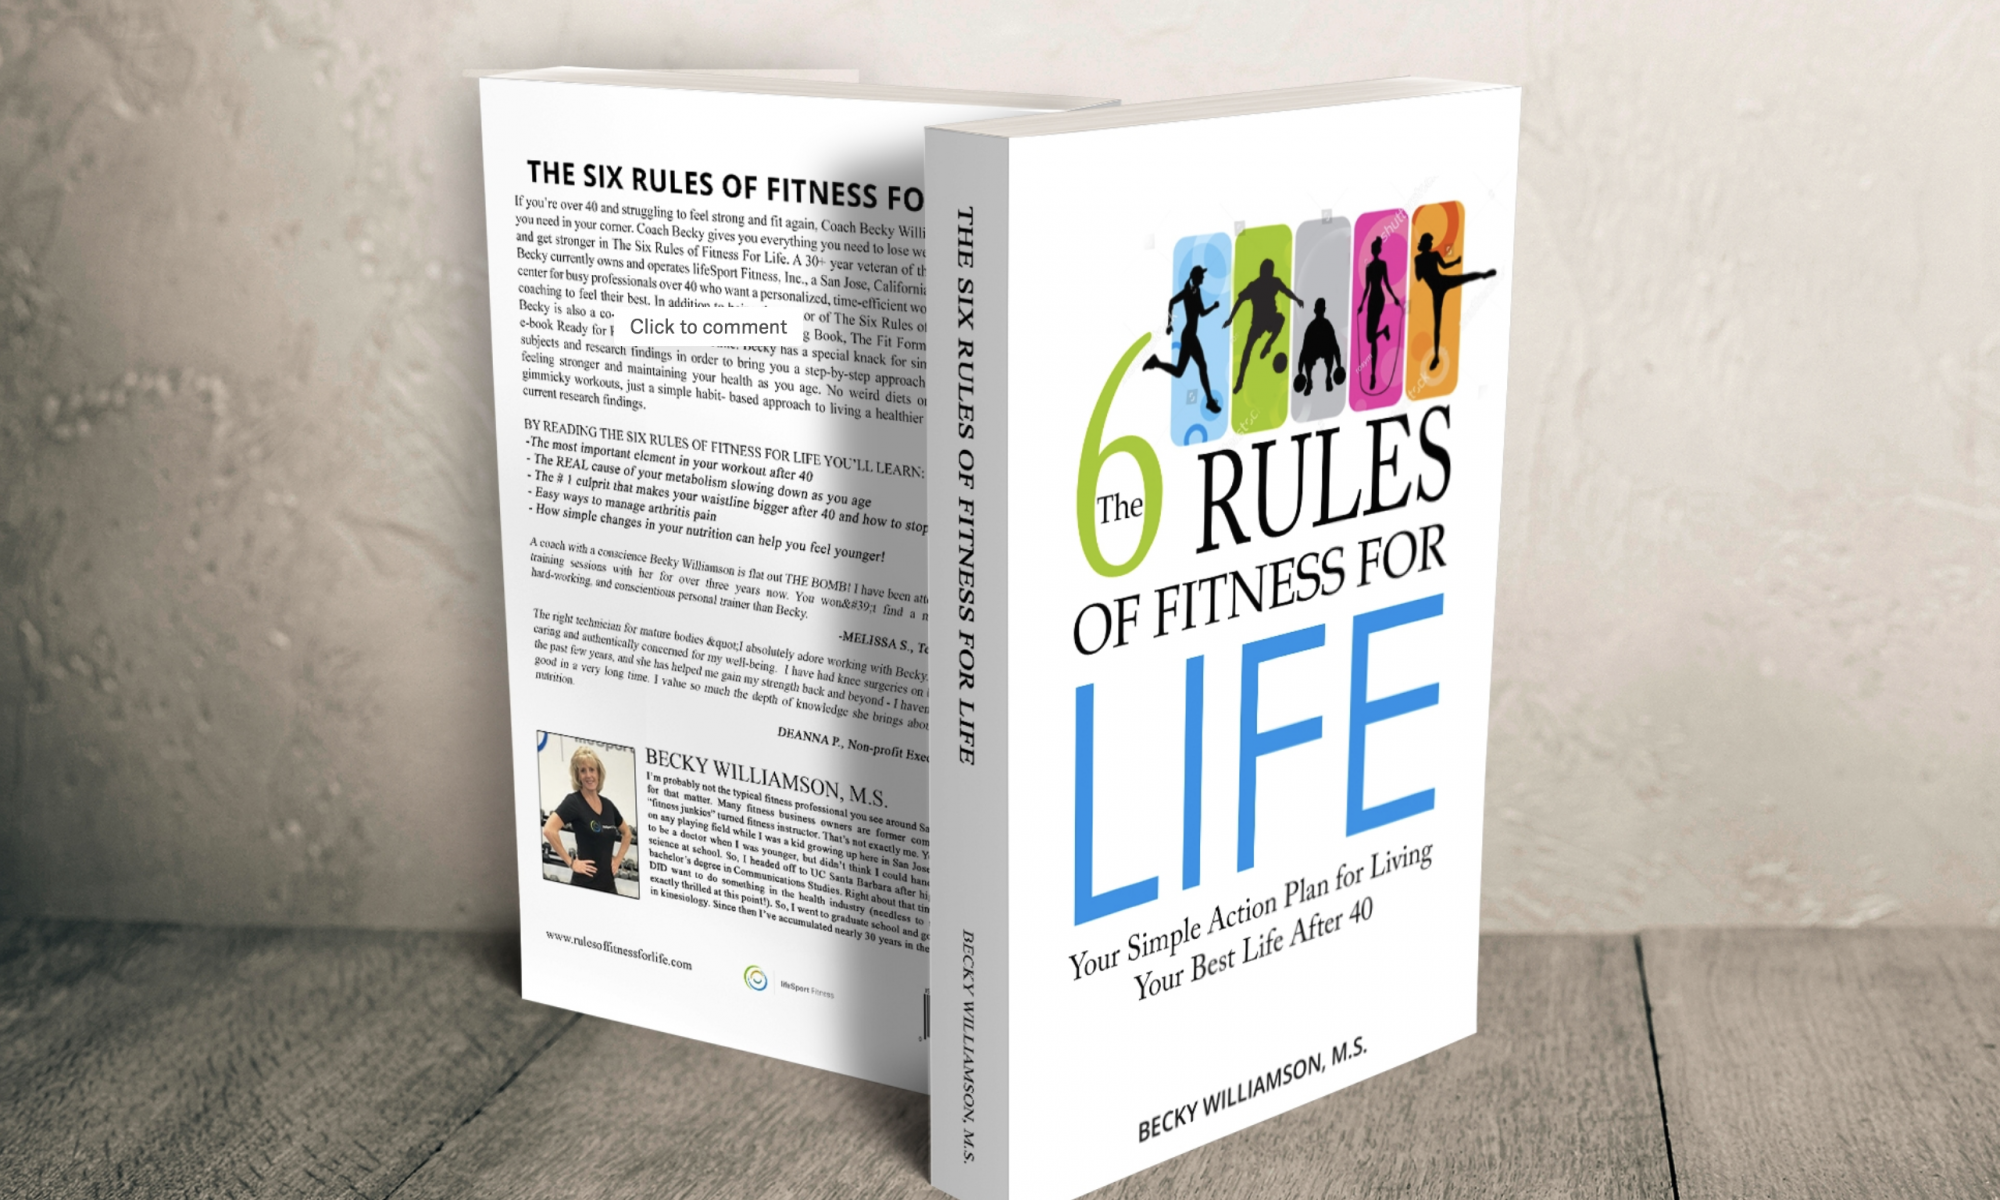 The Six Rules of Fitness for Life book